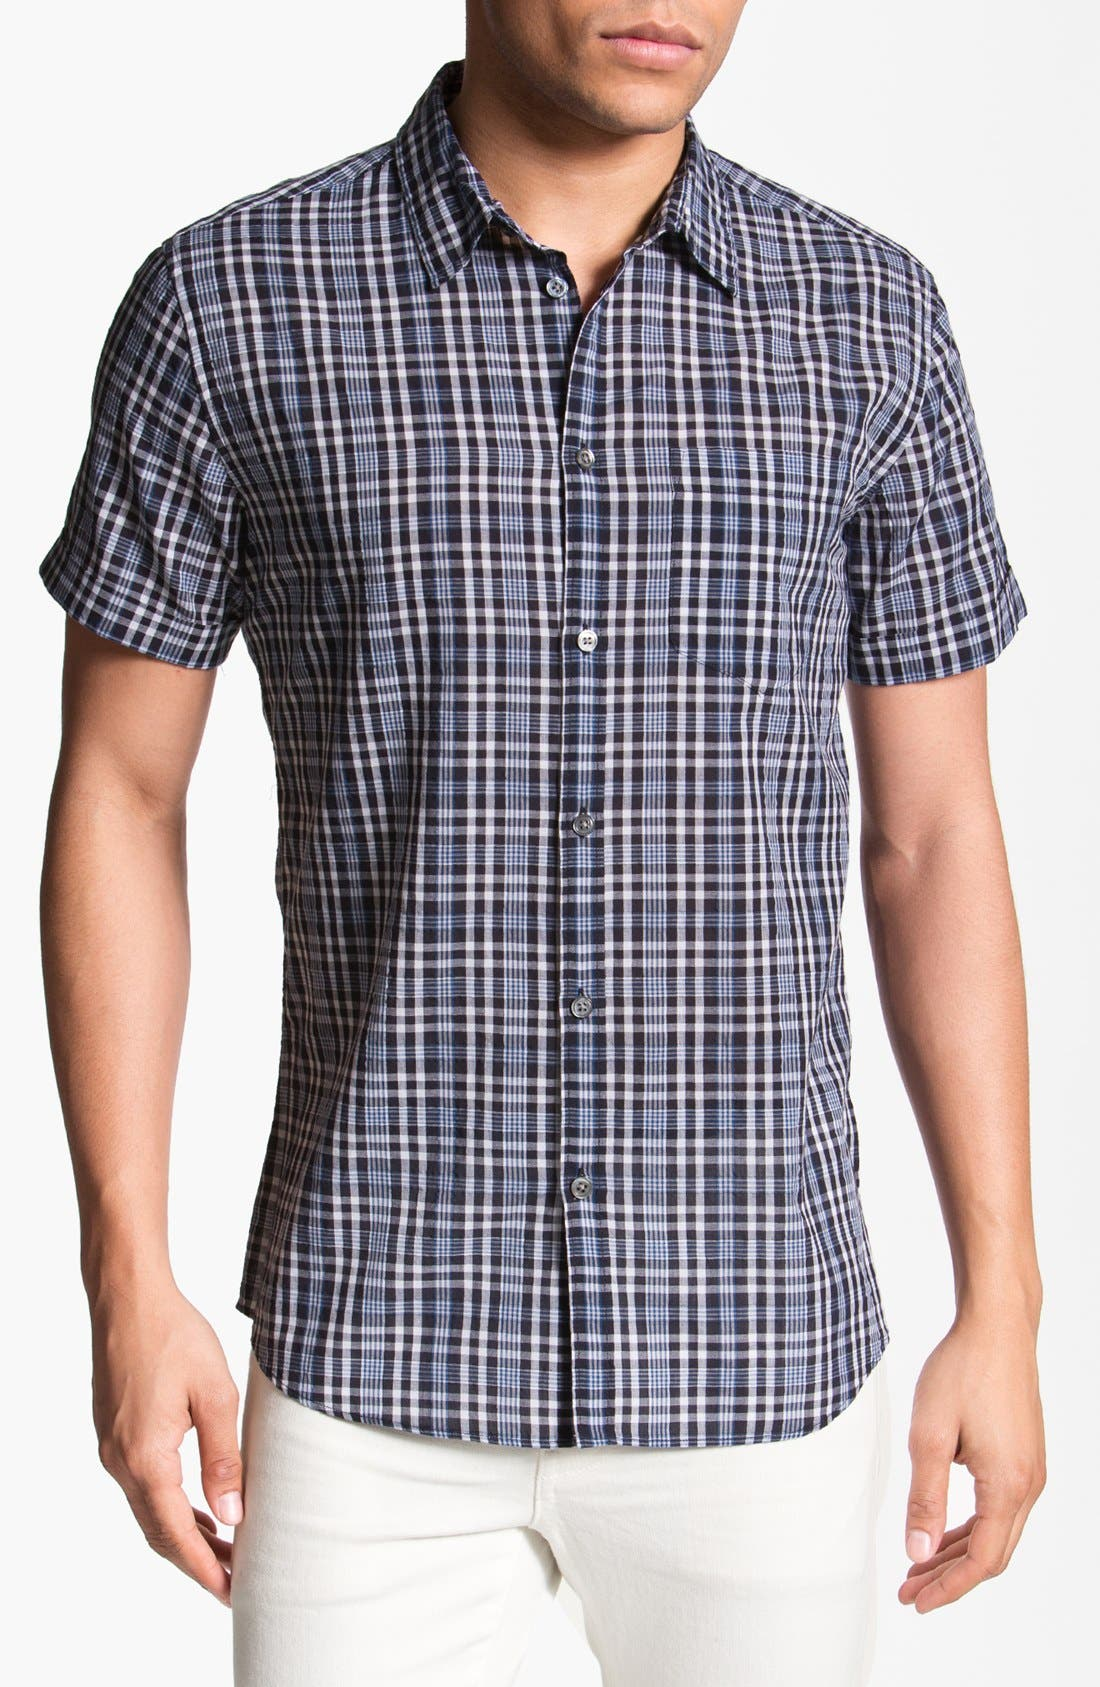 Main Image - MARC BY MARC JACOBS 'Dustin' Short Sleeve Woven Shirt